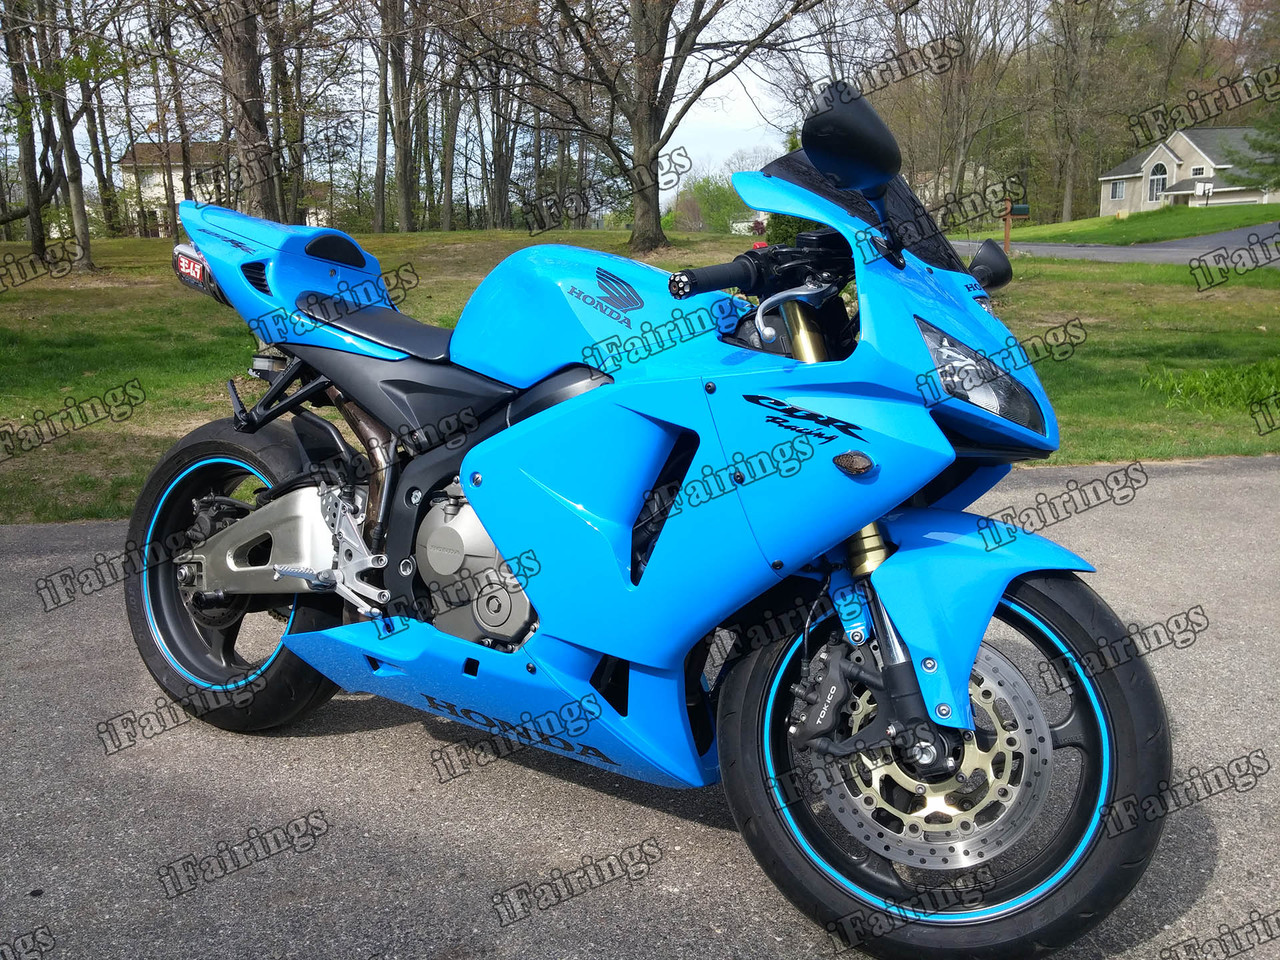 2005 2006 Honda Cbr600rr Blue Fairing Kit